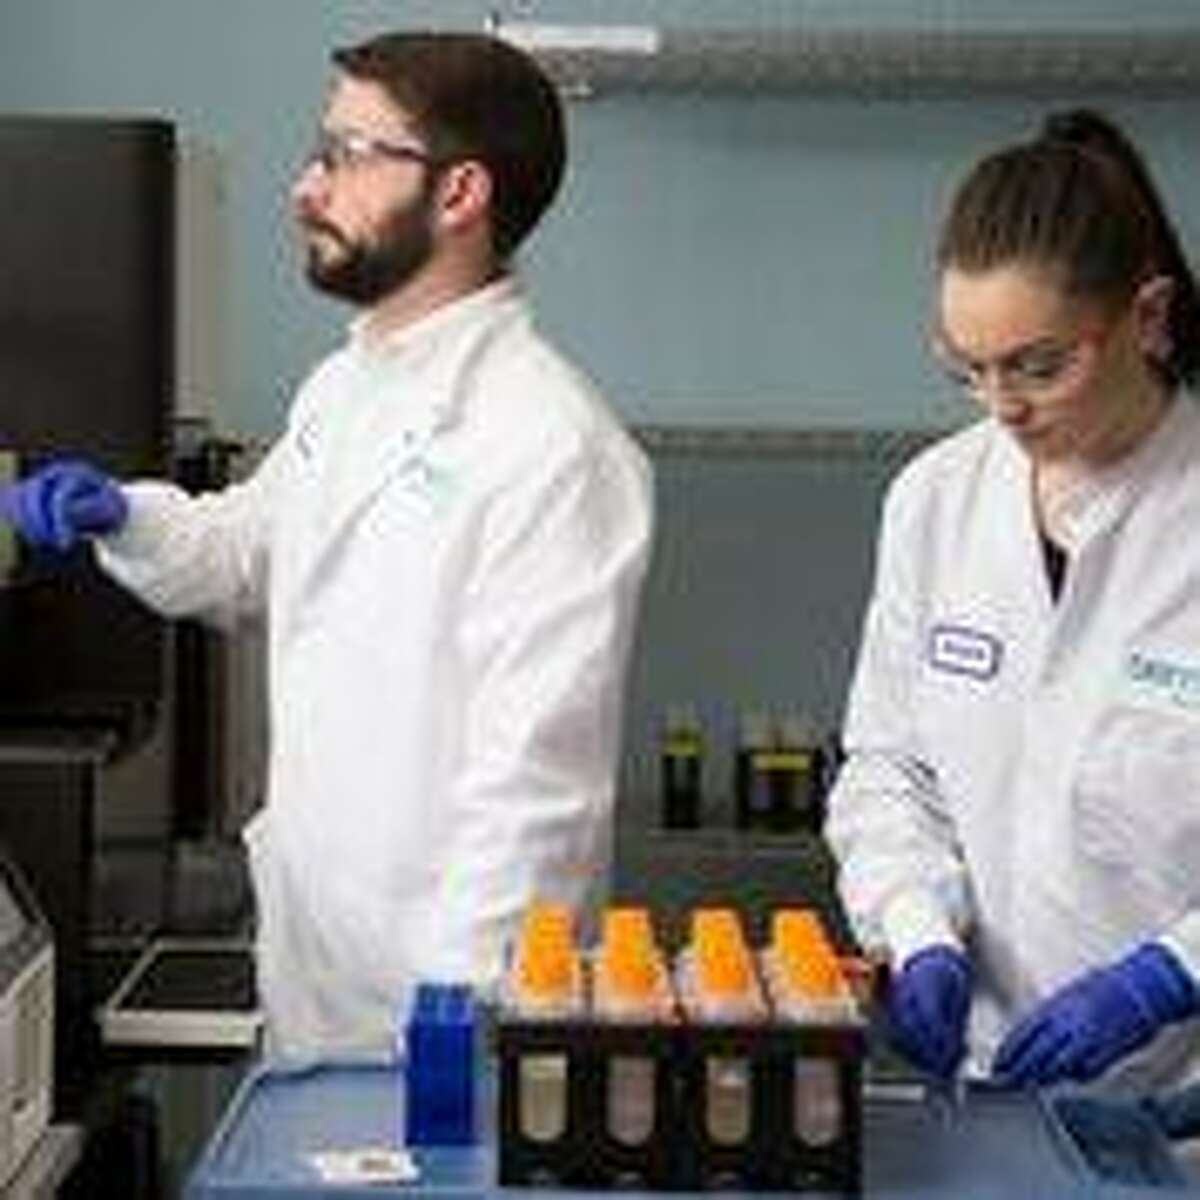 Sema4 employees work at the company's lab at 1 Commercial St., in Branford.